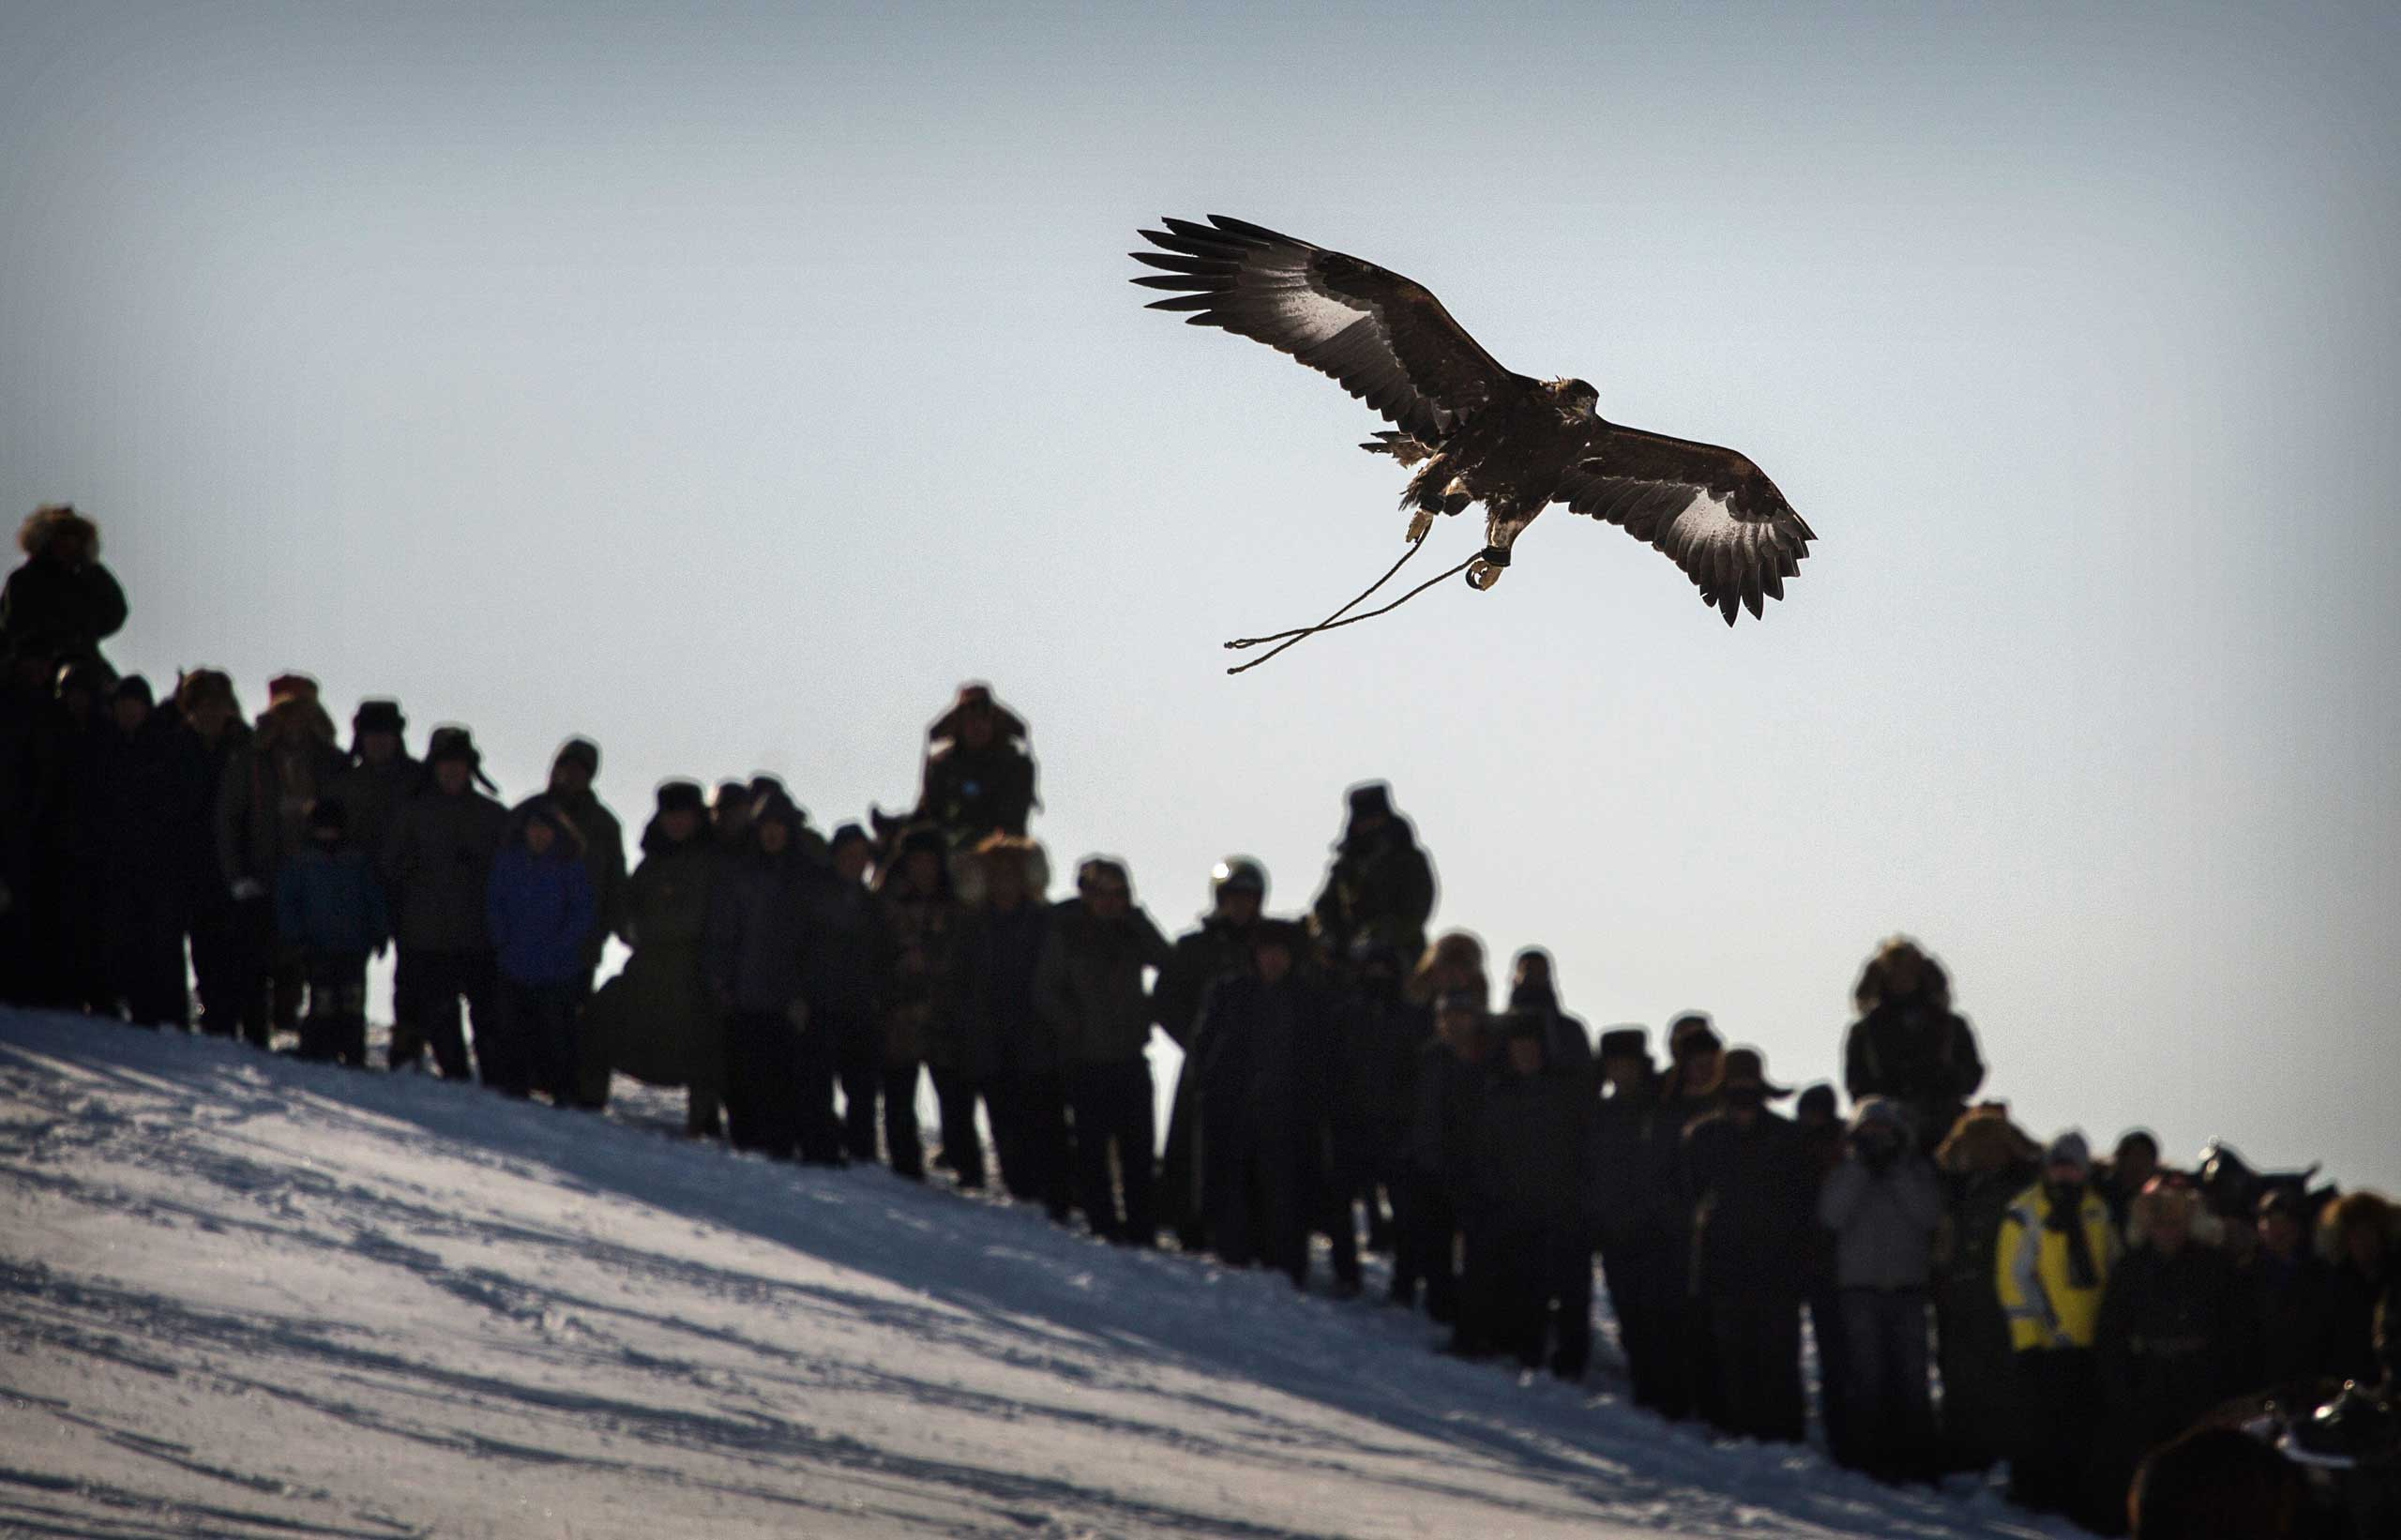 Spectators watch as an eagle flies above the crowd after it was released by a Chinese Kazakh eagle hunter.